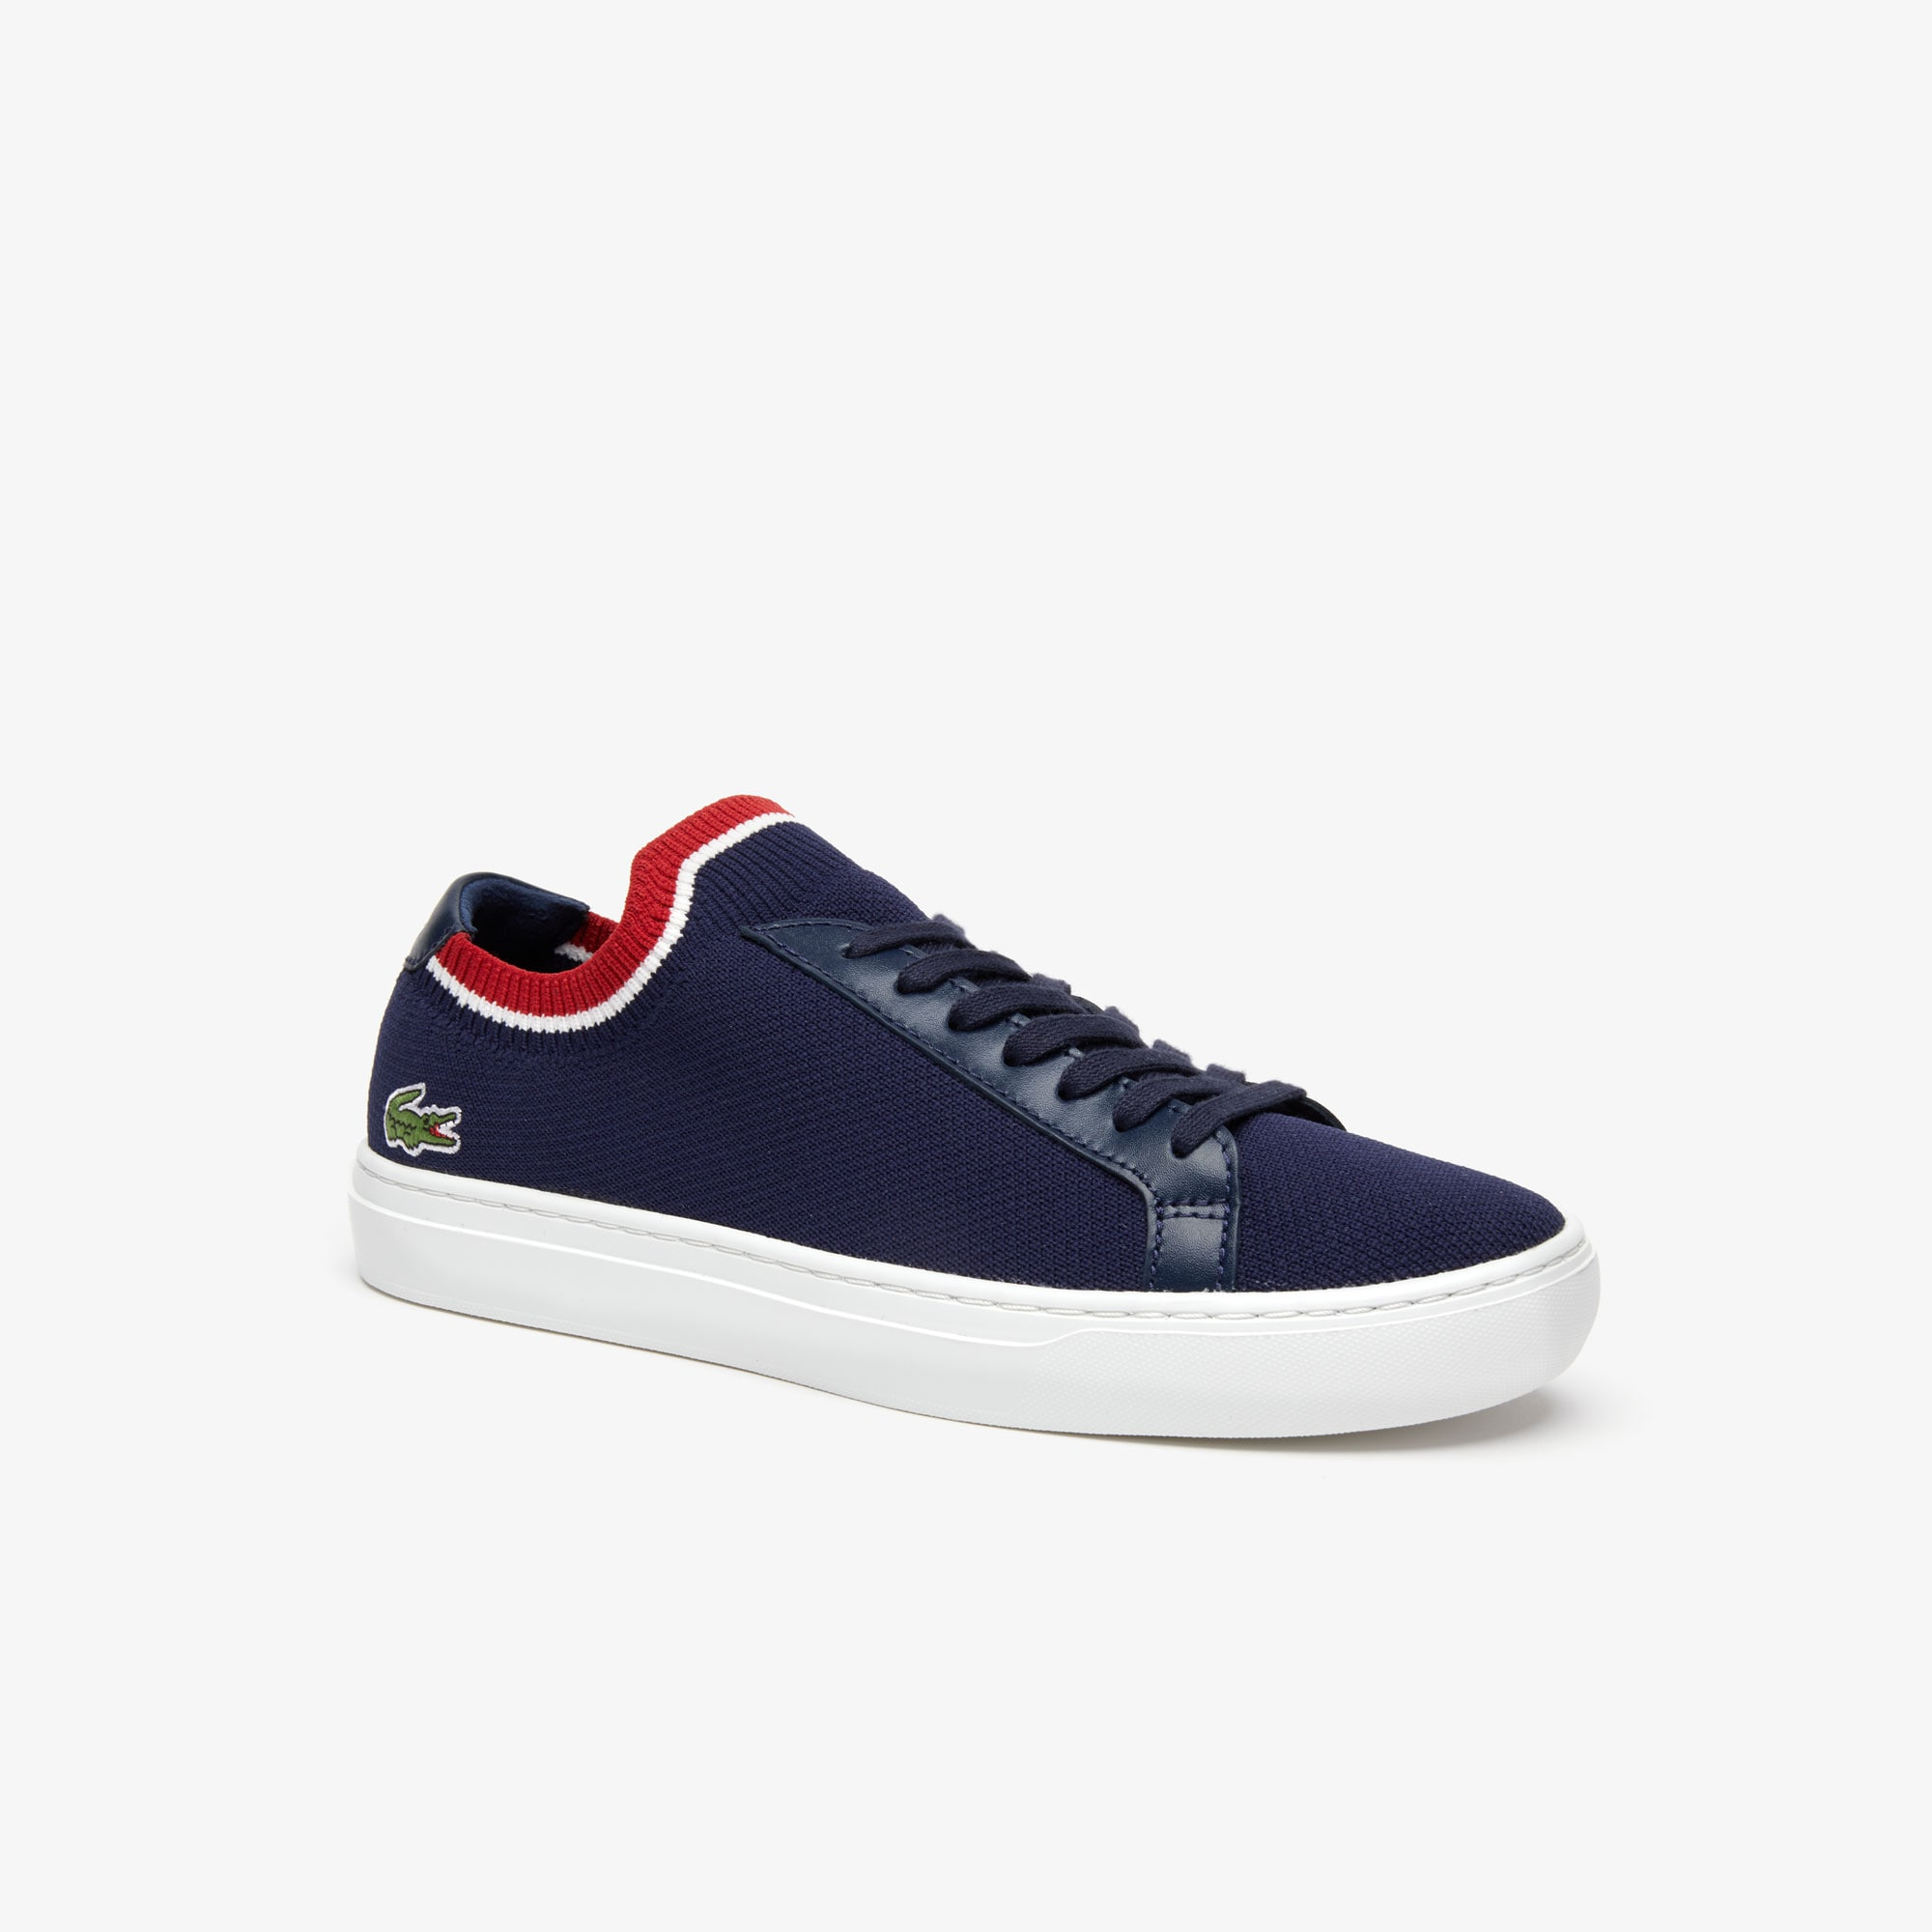 4f90c77adbdc Lacoste shoes for men  Sneakers